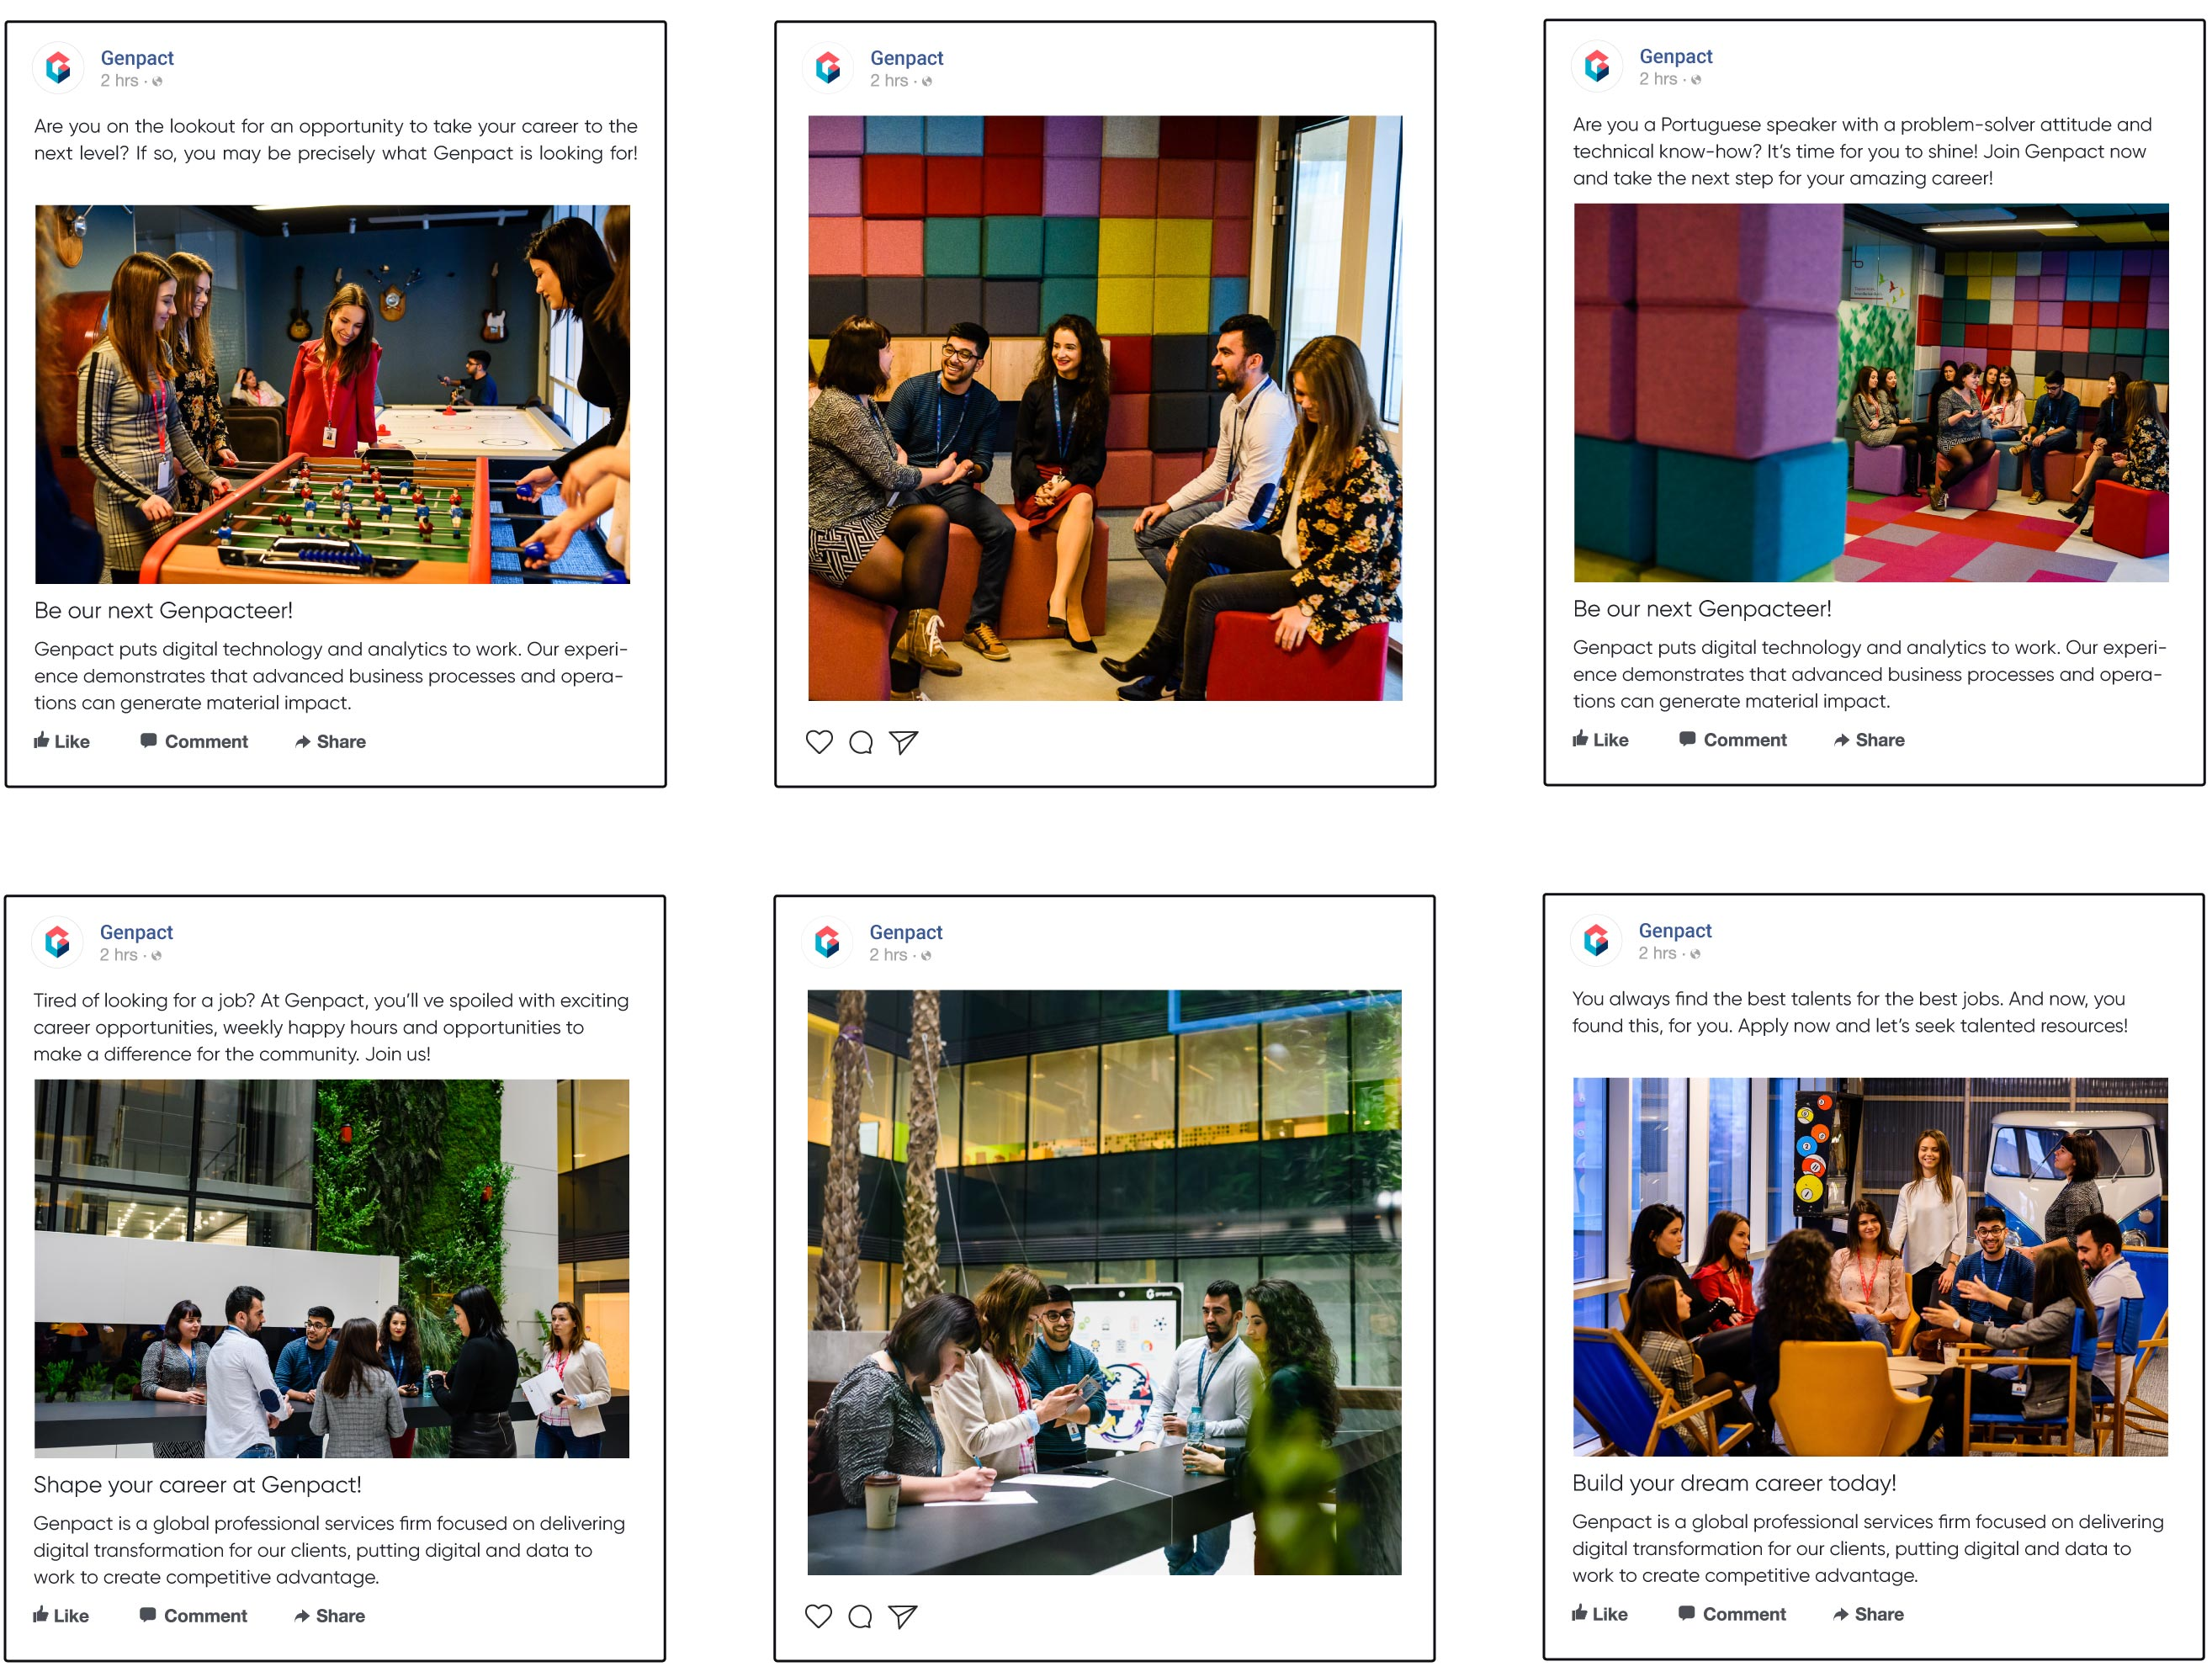 Genpact's social media recruiment campaigns